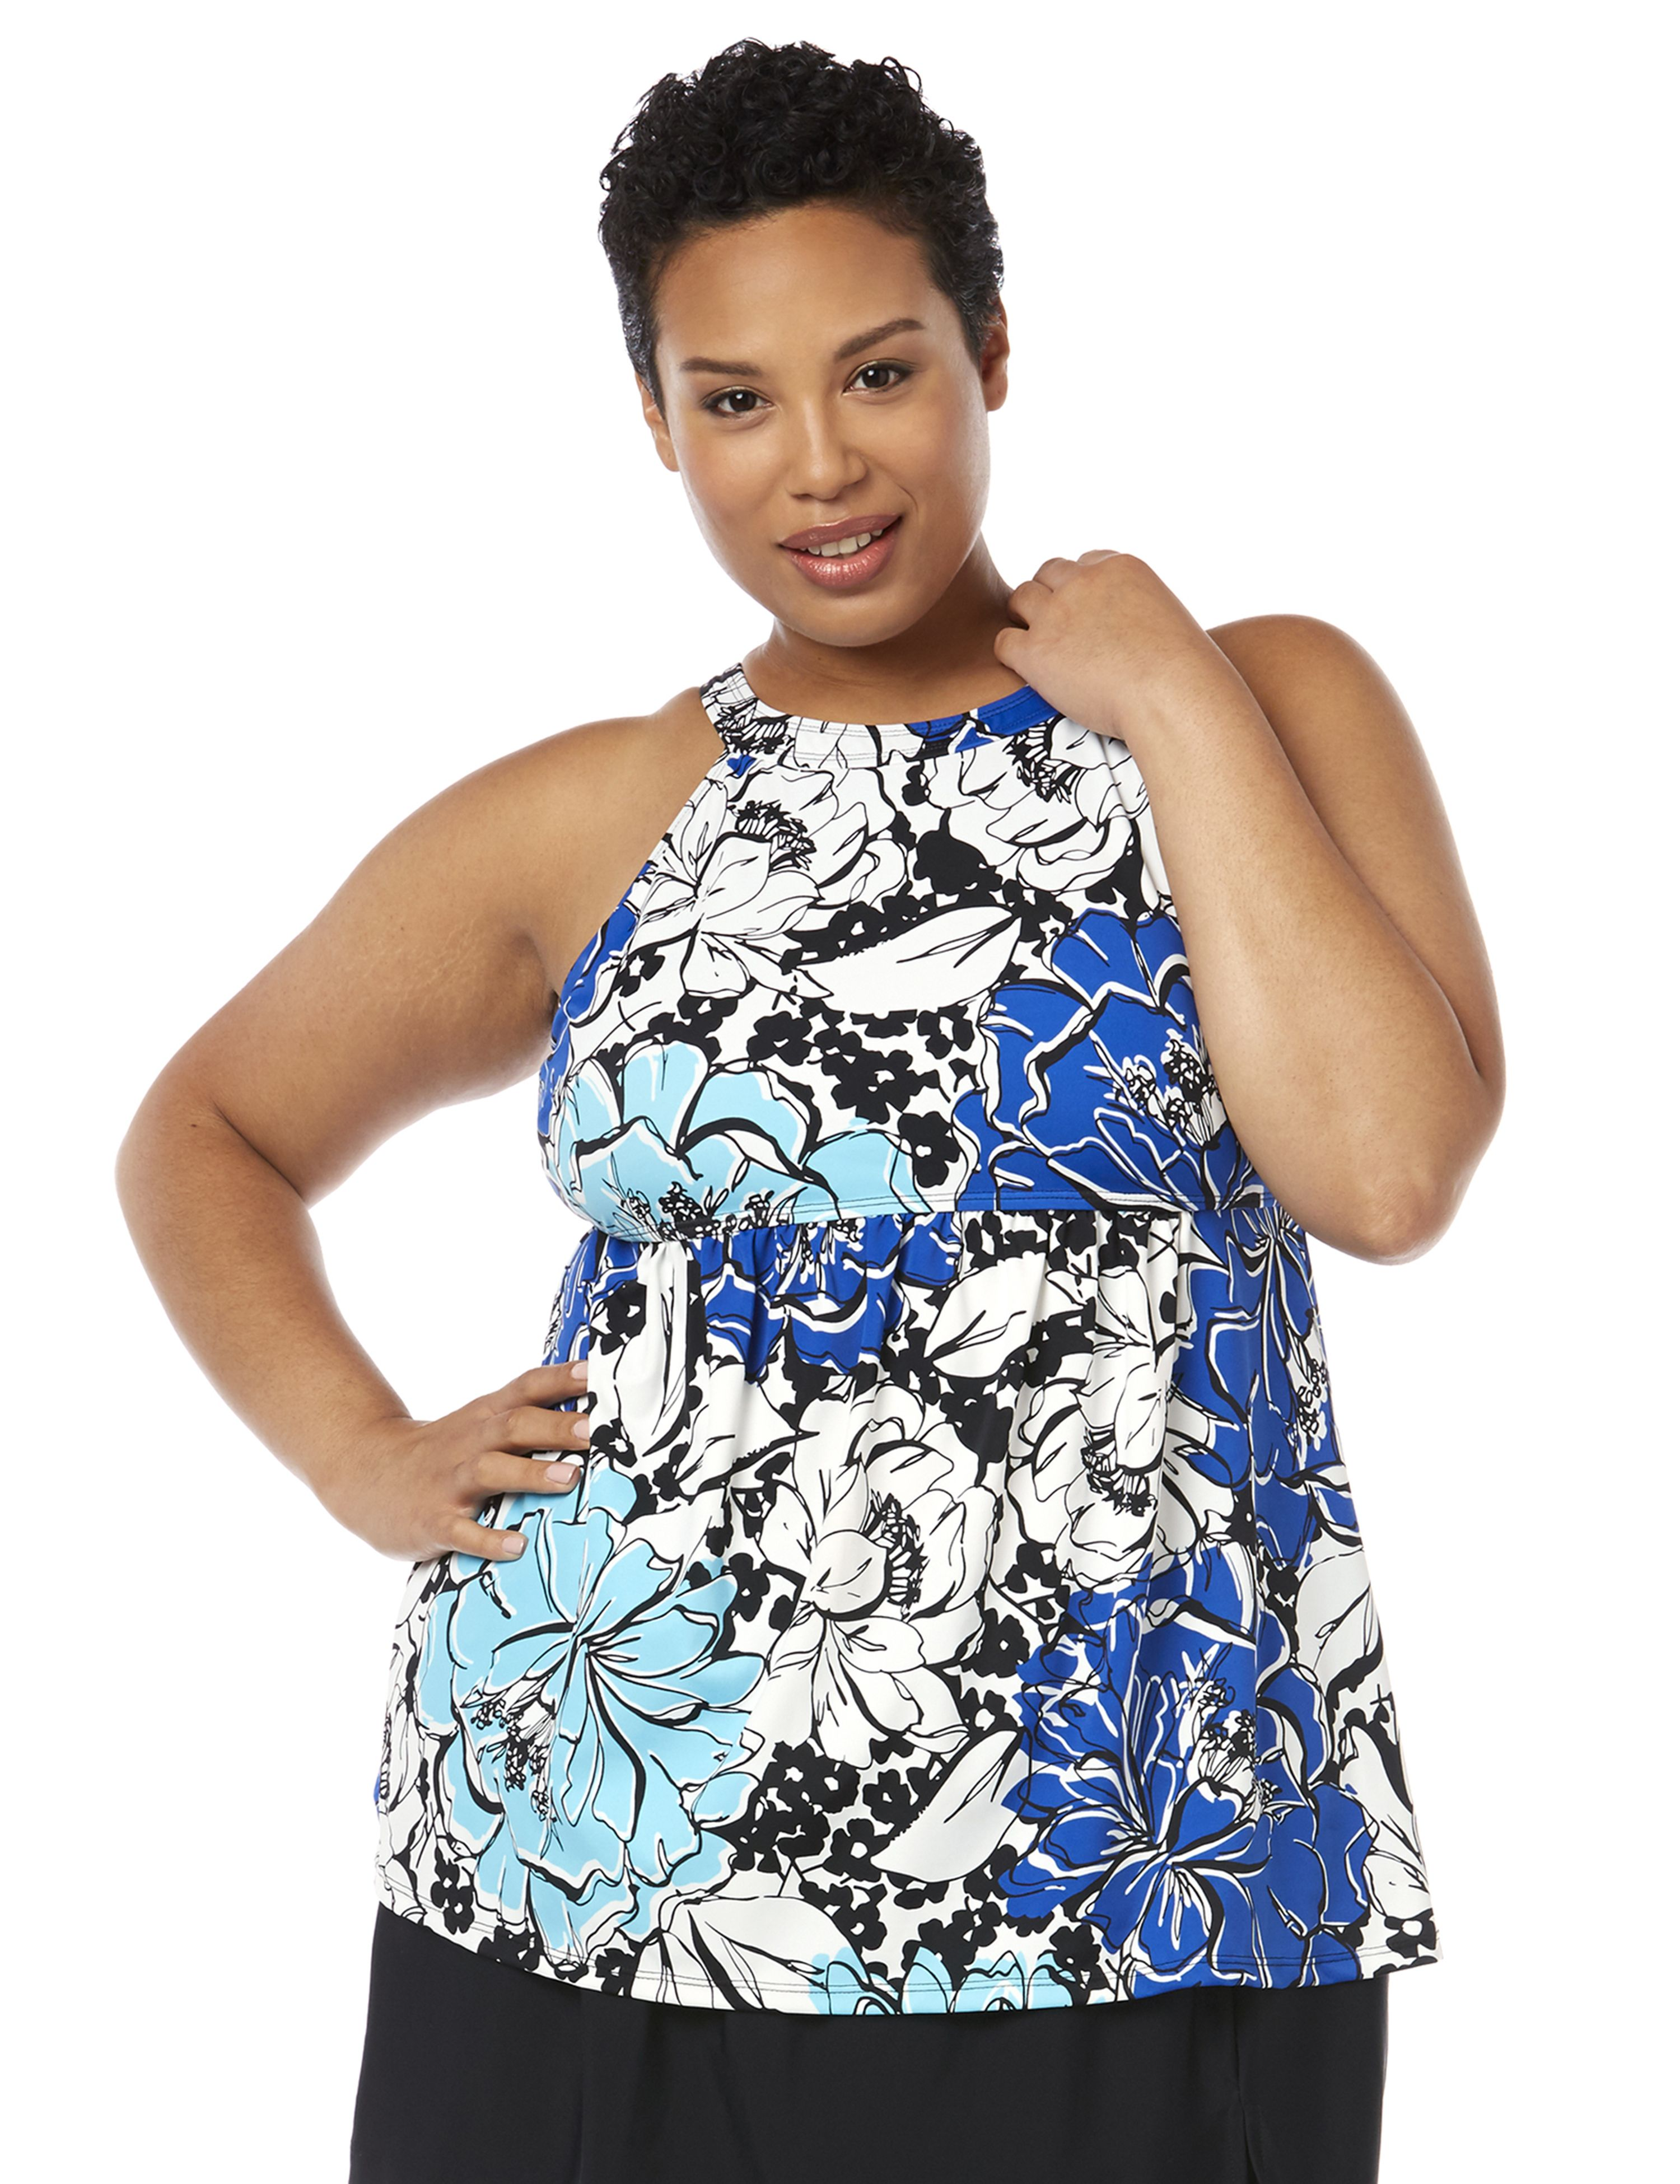 Graphic Floral Tankini Top 1086719 FIT4U HI NECK TANKINI TOP W MP-300090562